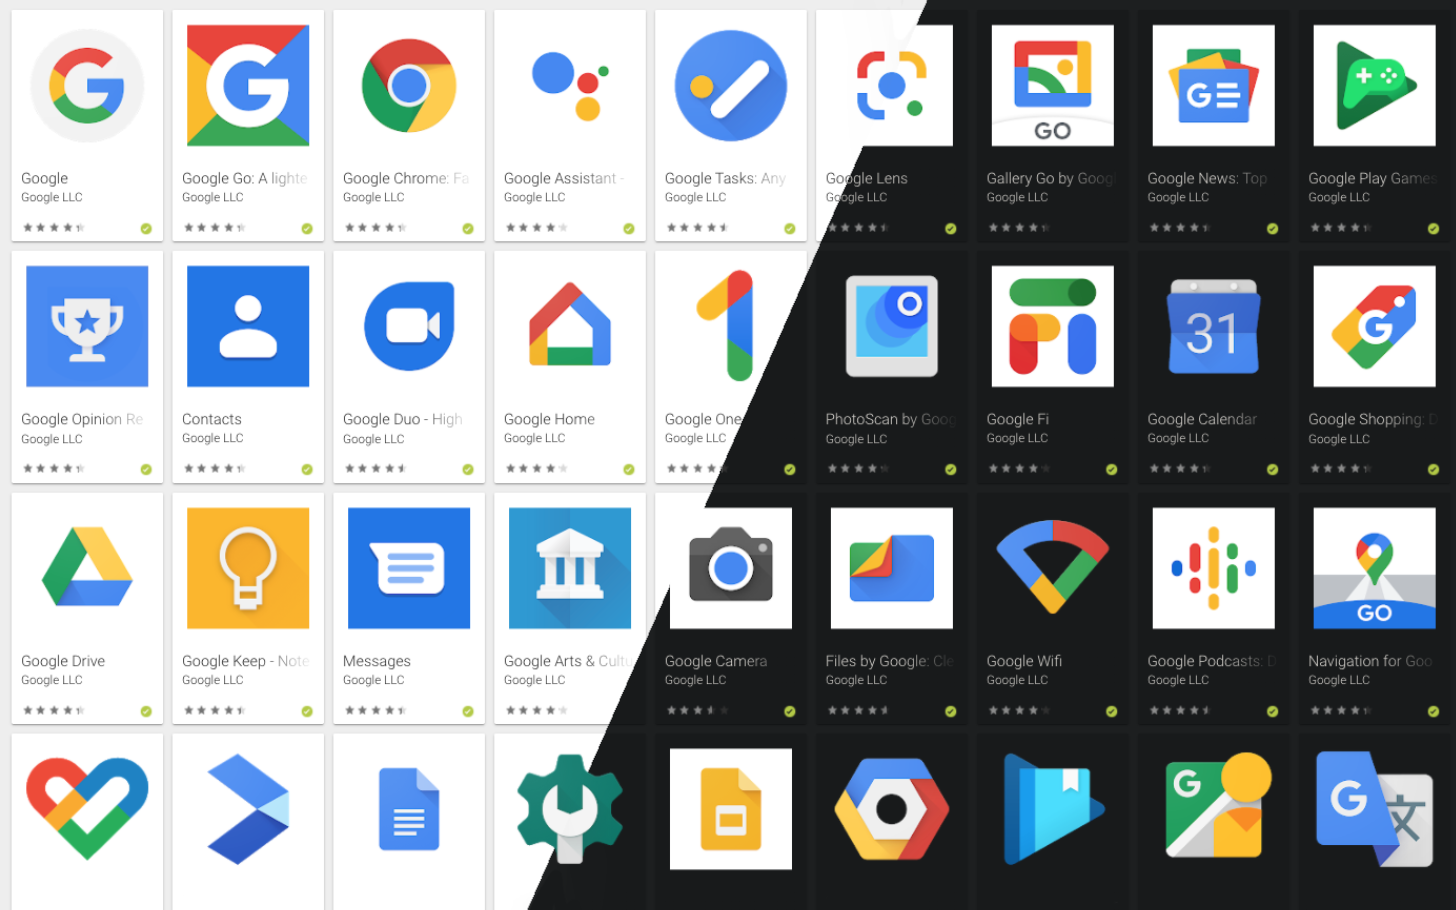 malicious apps on the google playstore